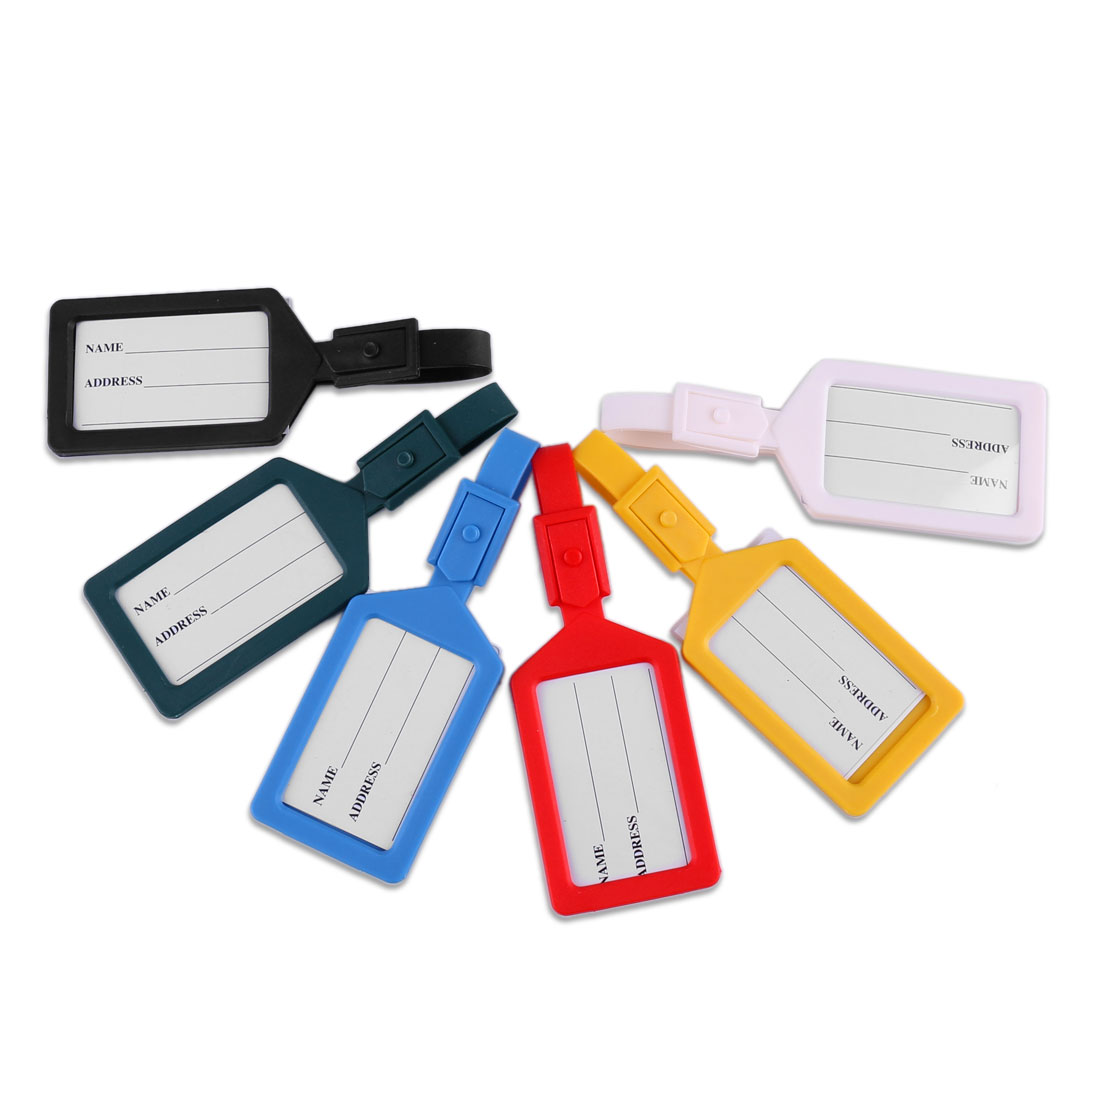 6 Pcs Assorted Color Plastic Name Address Tag Label for Suitcase